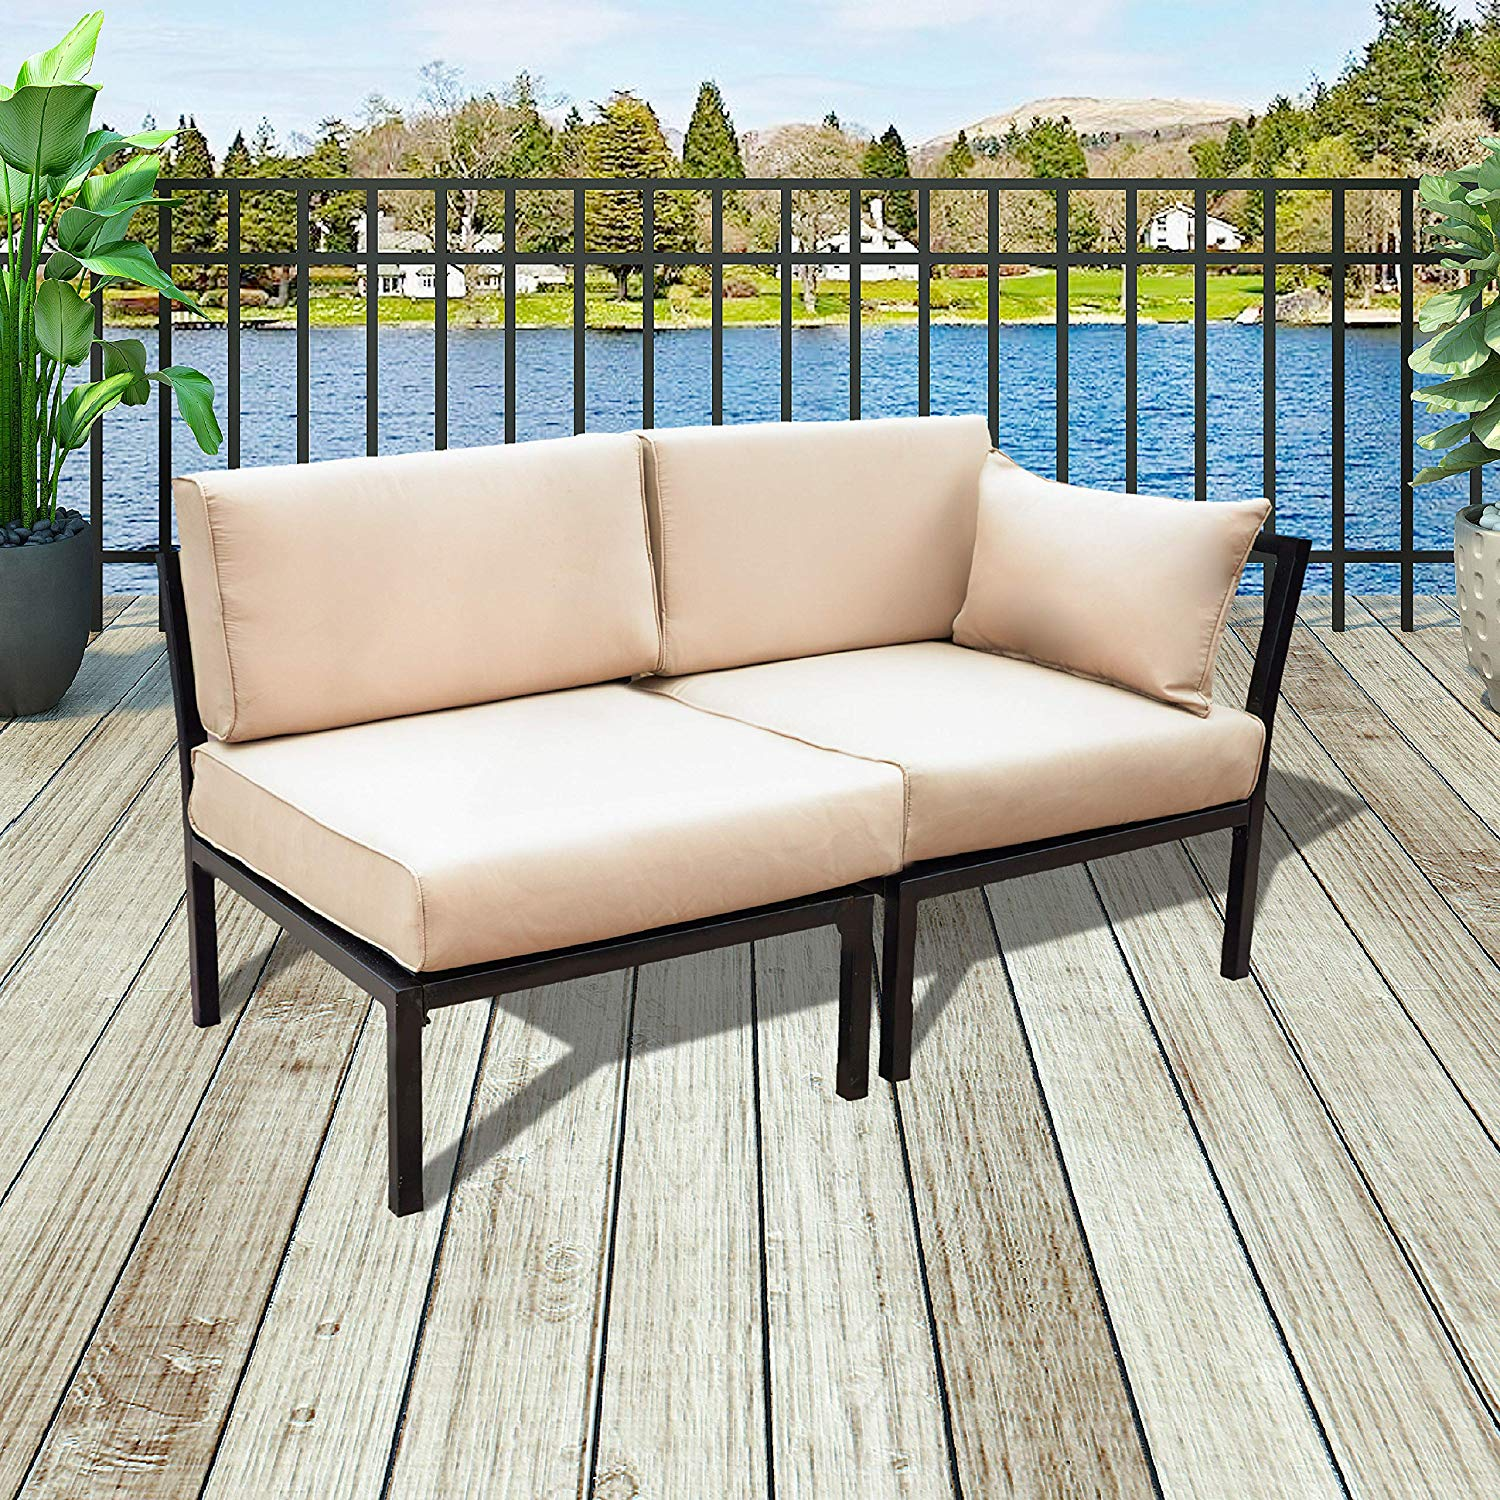 Patio Festival Loveseat,Outdoor Metal Furniture 2 Seat All-Weather Sectional Corner Sofa Set